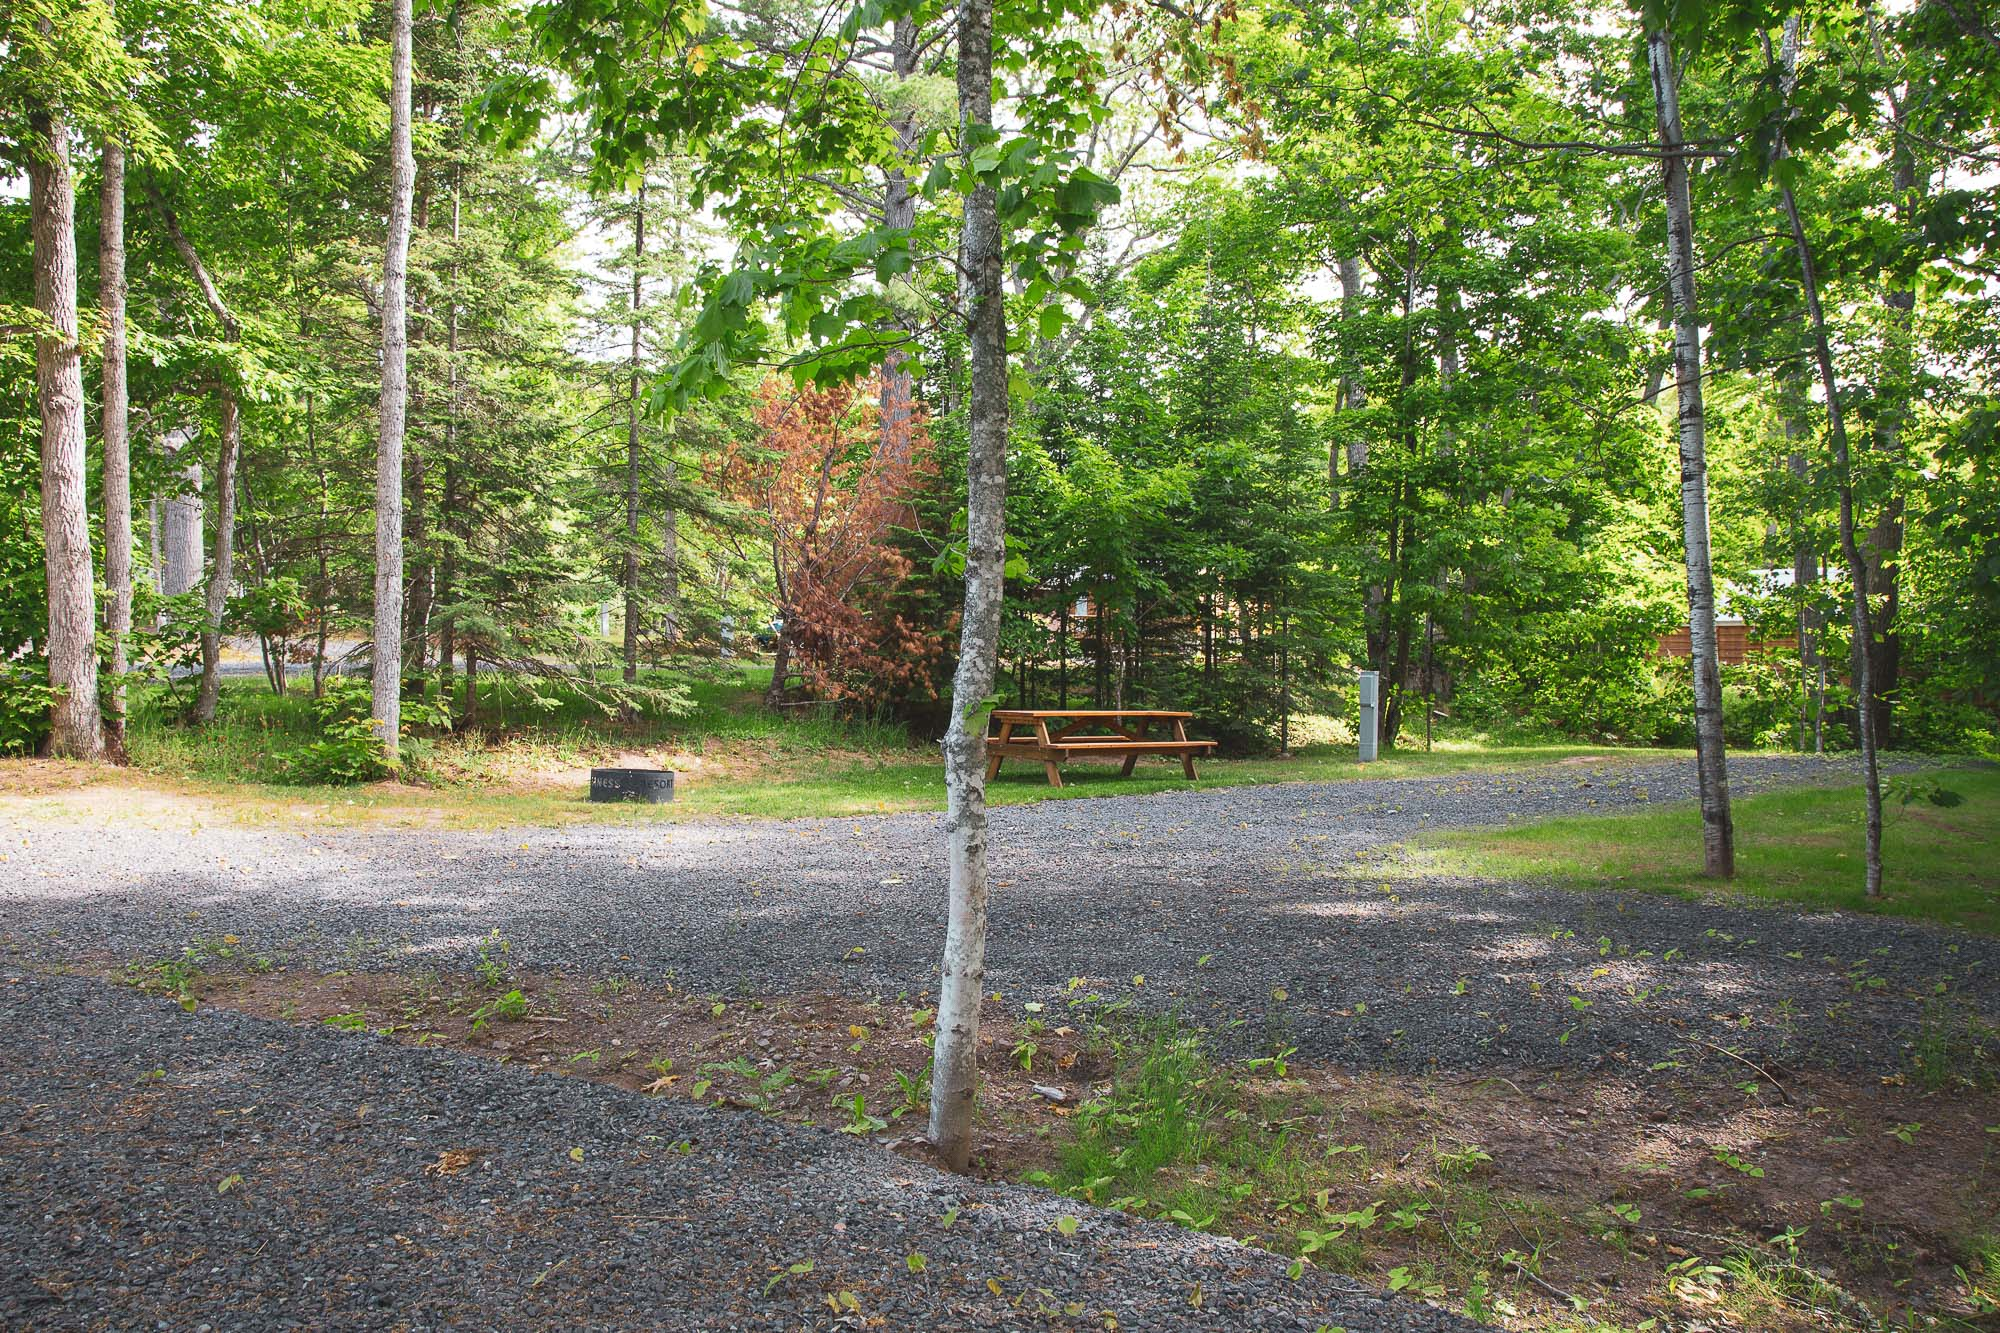 Photo of Campground Site 10  at the Wilderness Resort in Lac La Belle Michigan